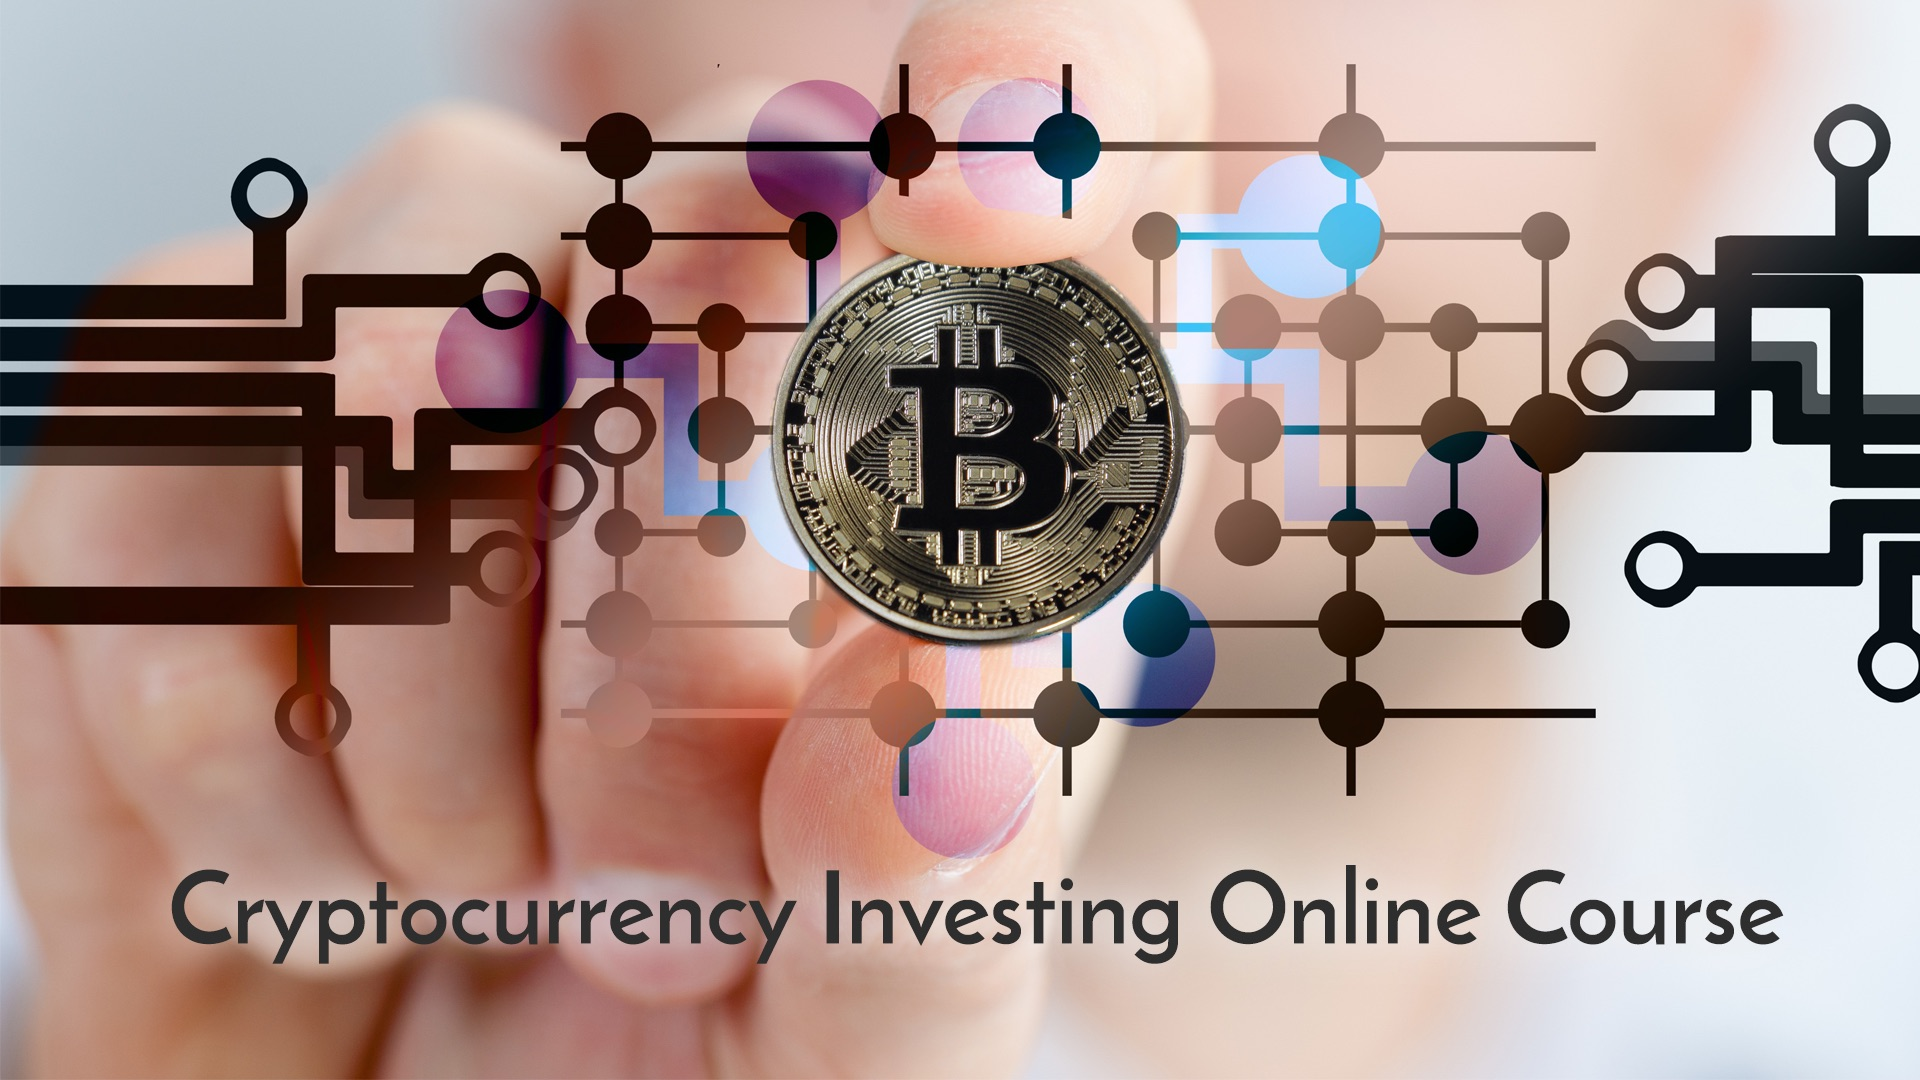 Cryptocurrency Investing Online Course: Buy & Trade Bitcoin & Altcoins For Beginners